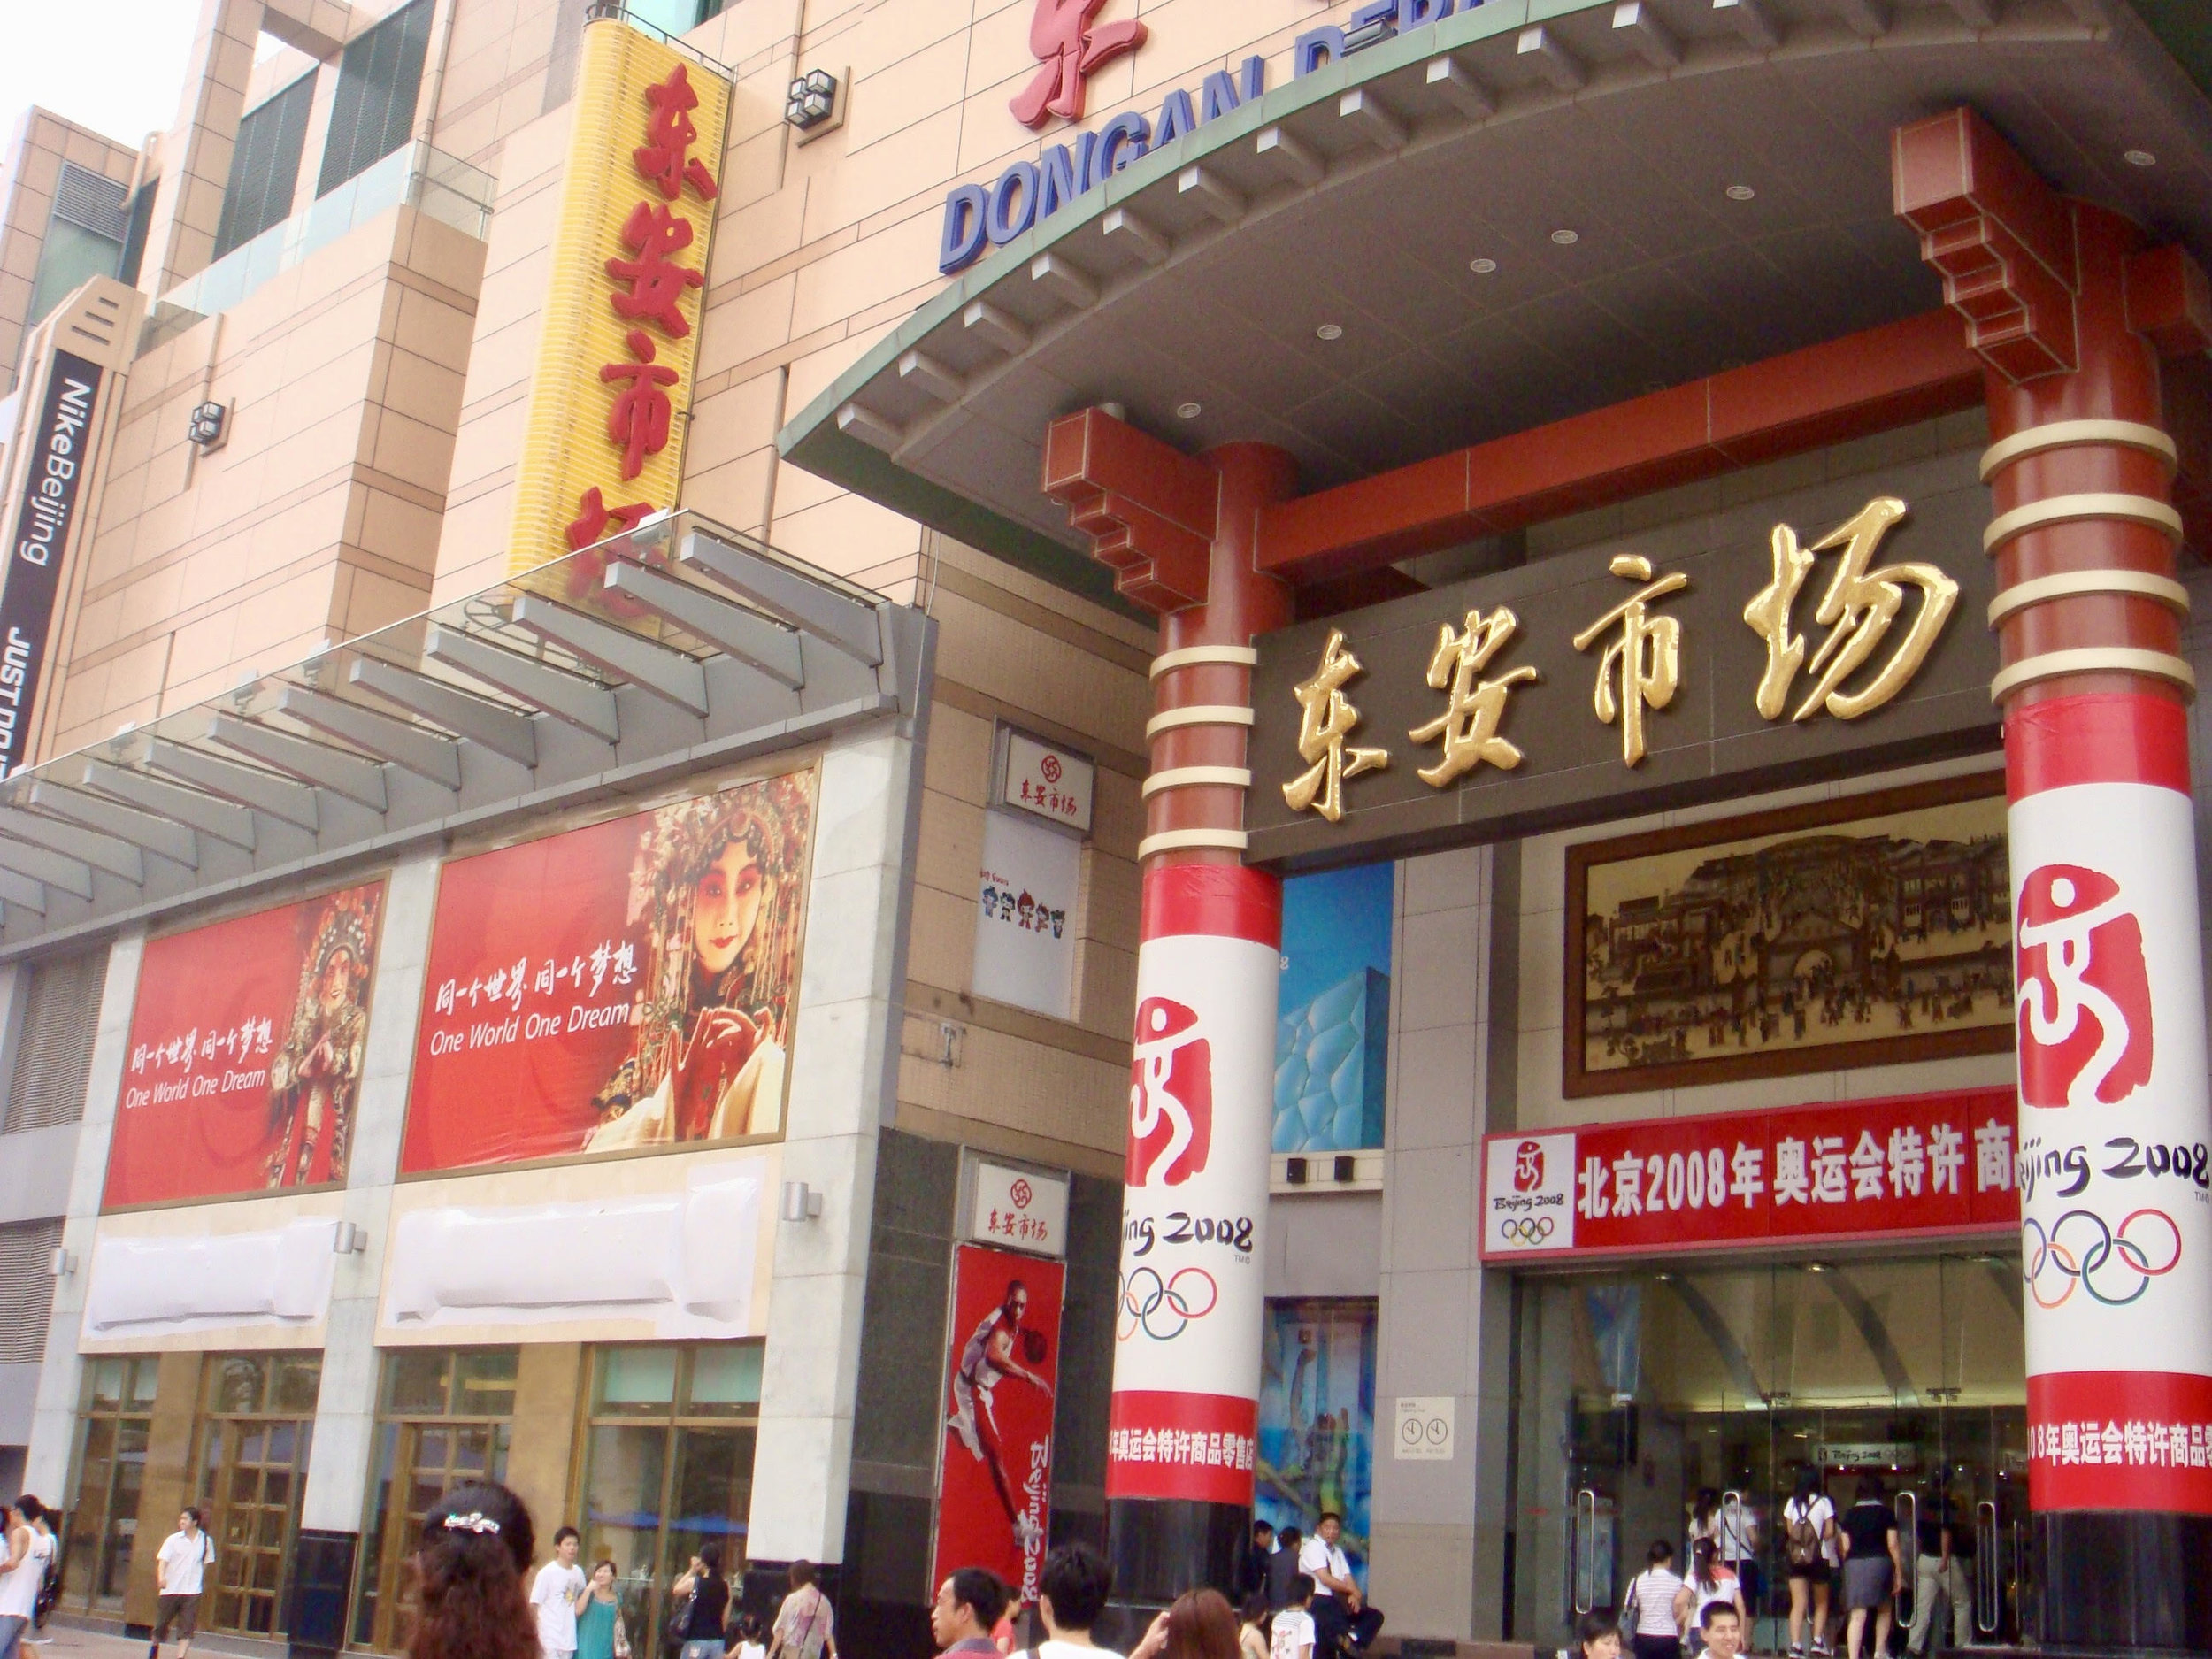 The Official store of the Beijing 2008 Olympic Games…all 3 floors of it!